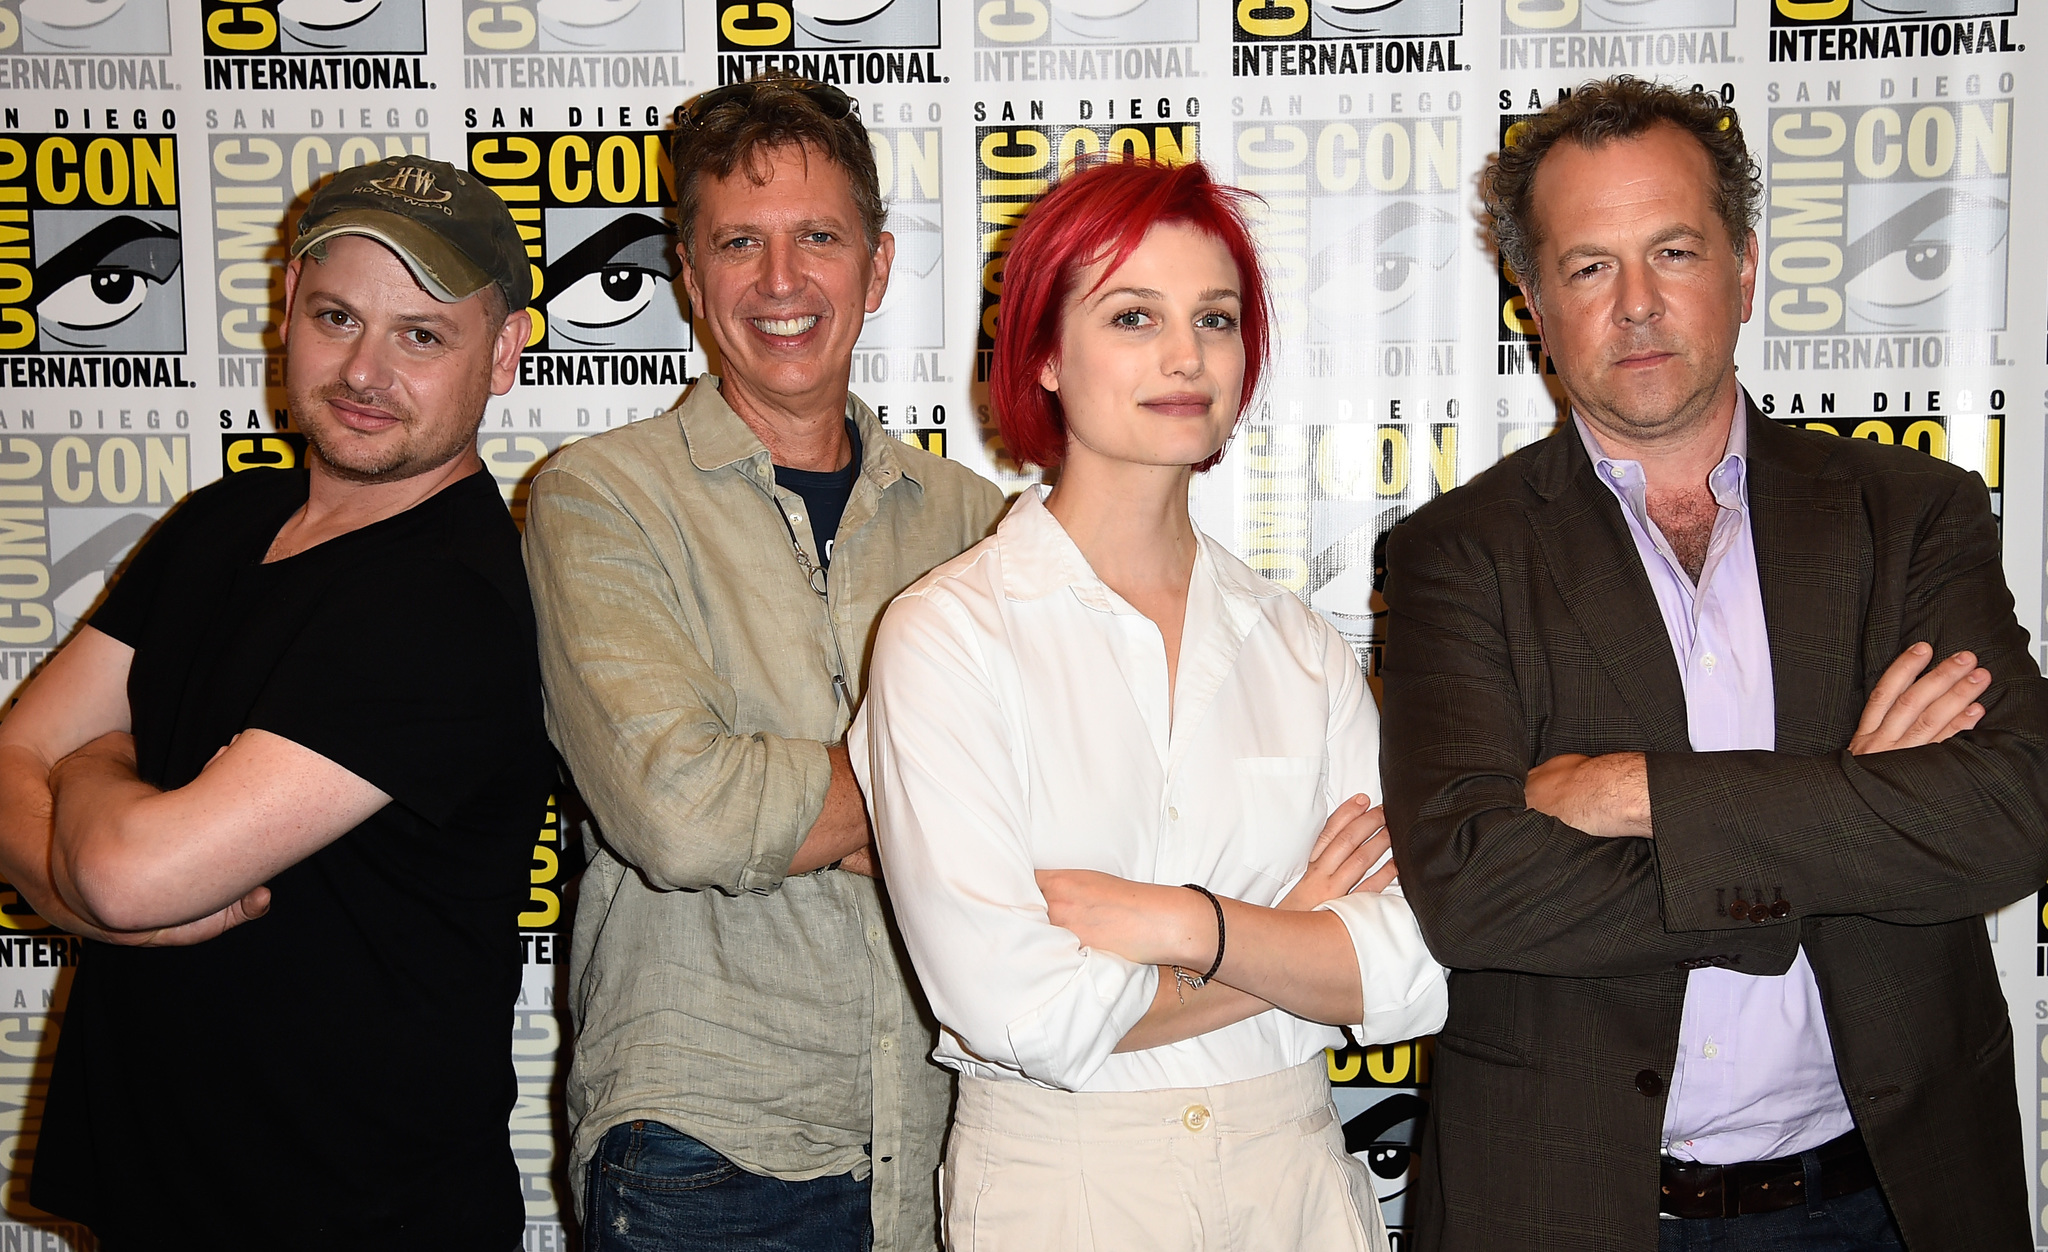 David Costabile, Tim Kring, Alison Sudol, and Gideon Raff at an event for Dig (2015)